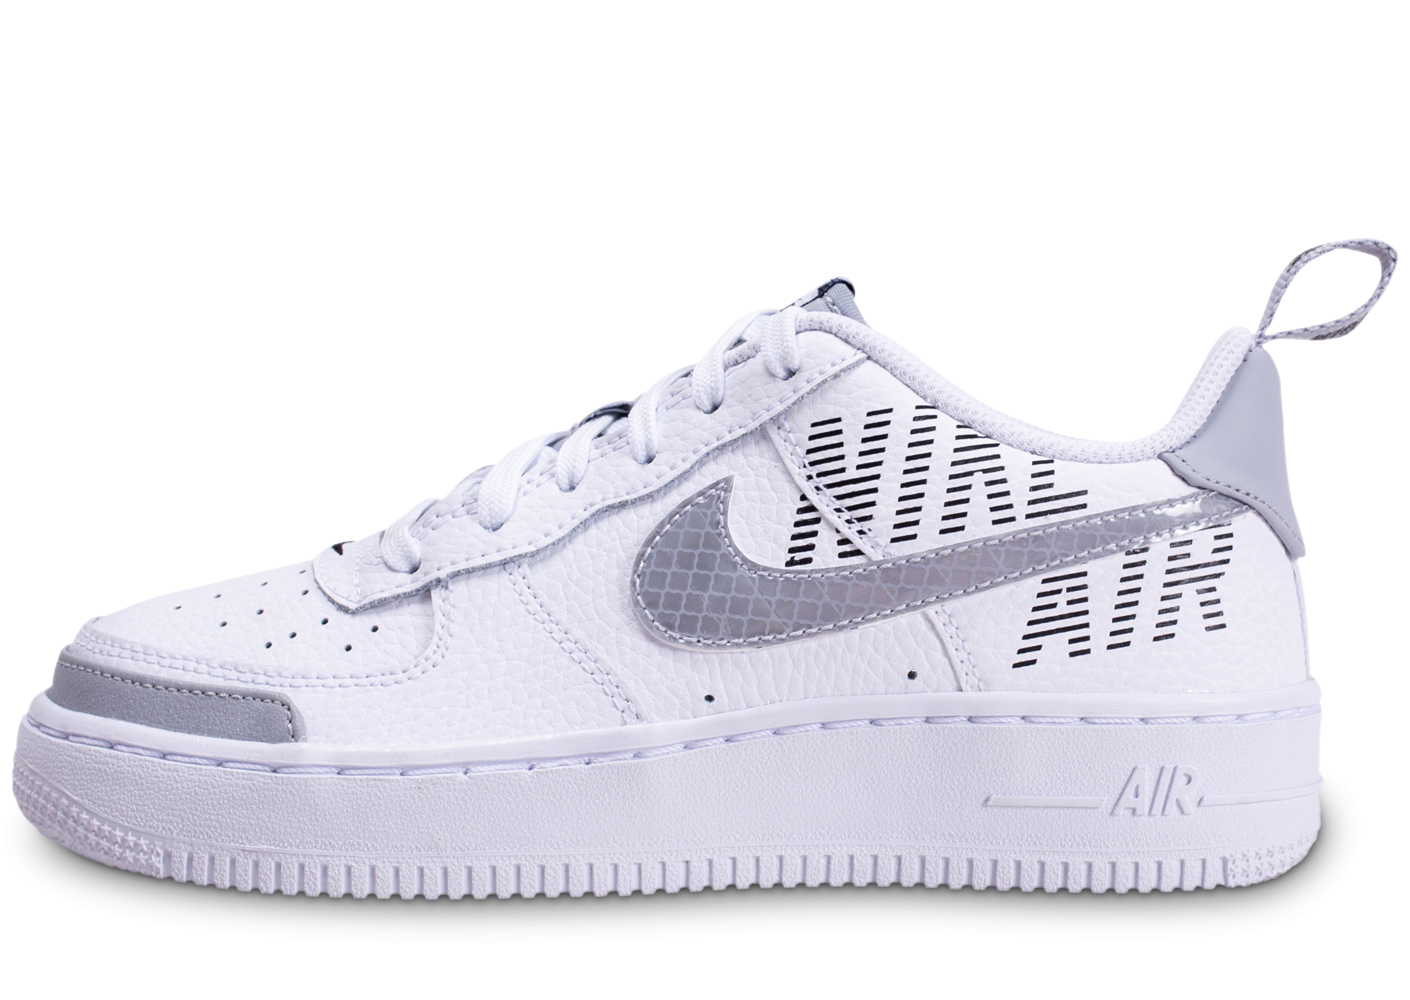 Nike Air Force 1 Under Construction blanche et grise junior